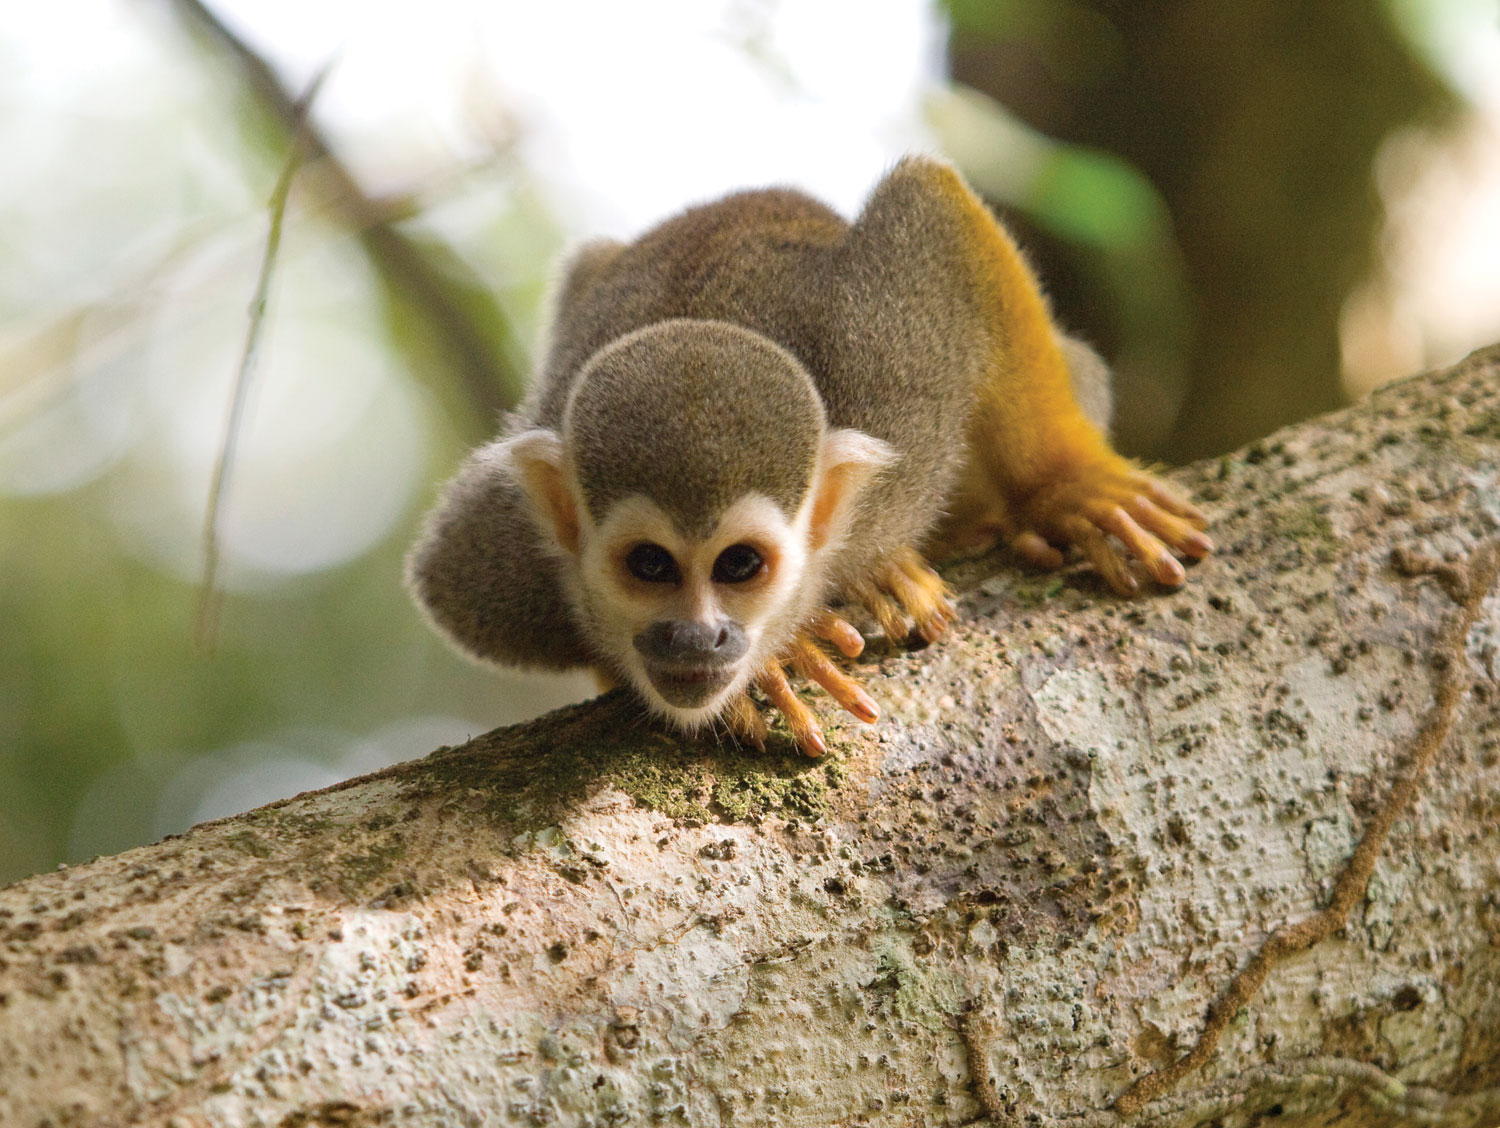 A squirrel monkey on Foengoe Island at Raleighvallen, in the reserve. Photograph by Andy Isaacson